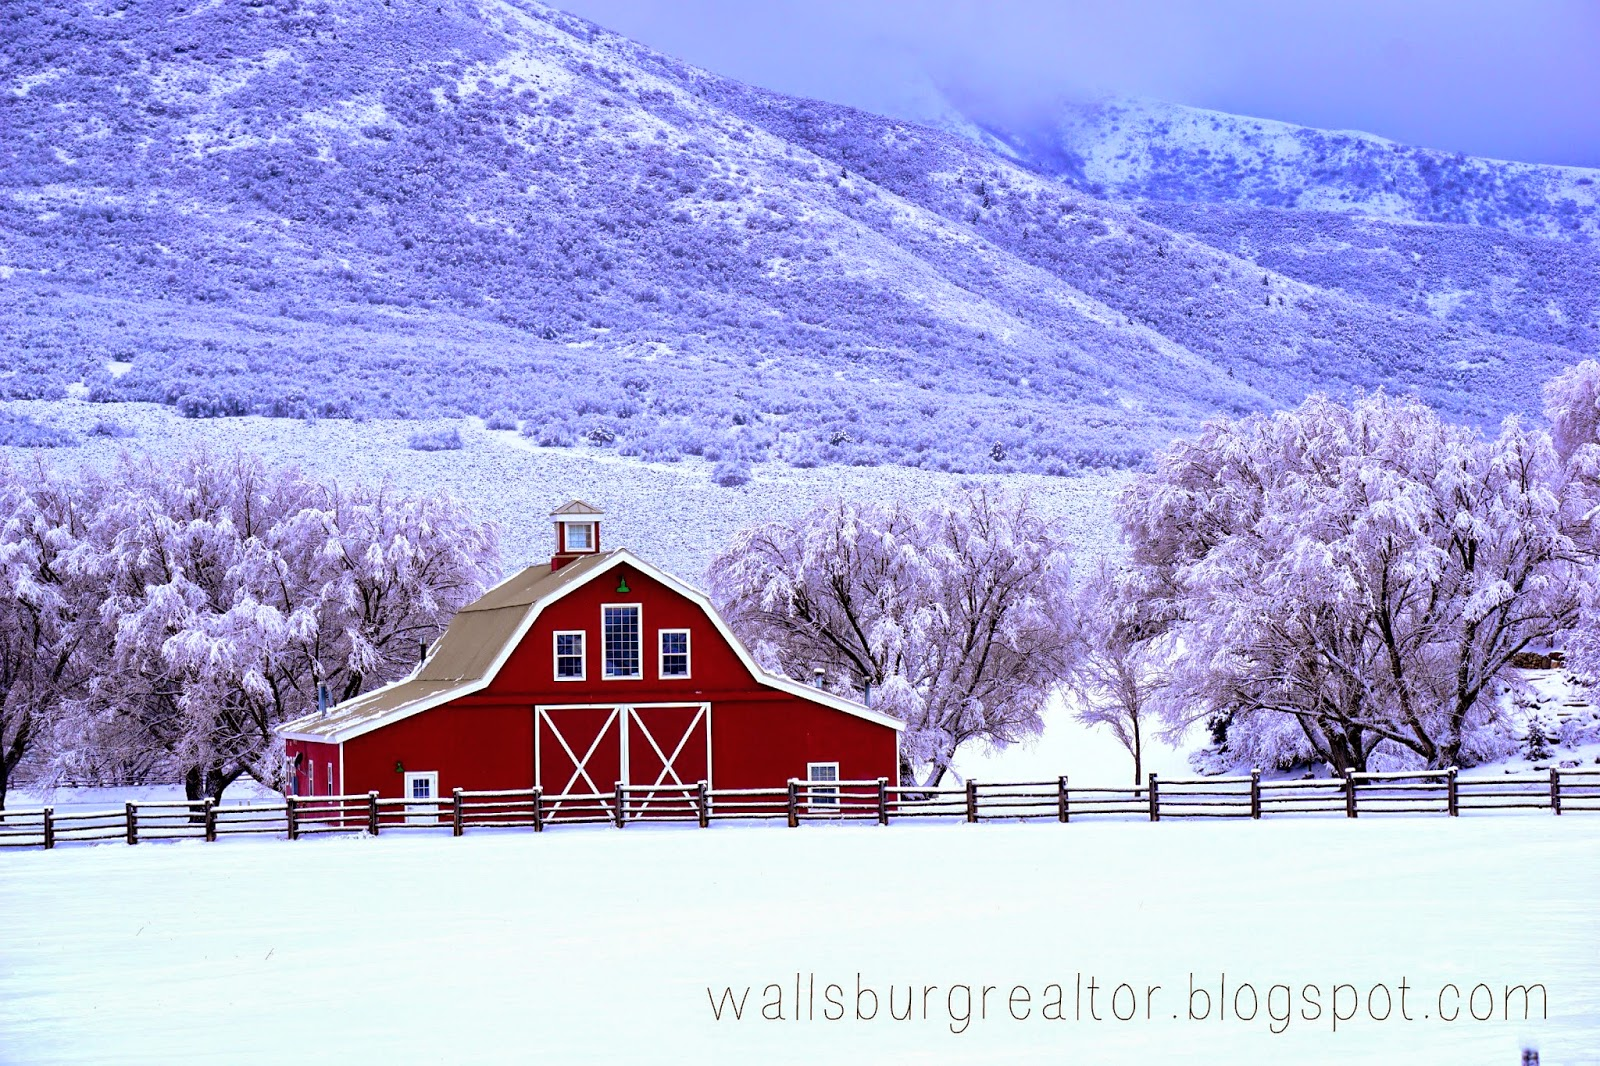 Red Barn with Snow in Wallsburg, UT